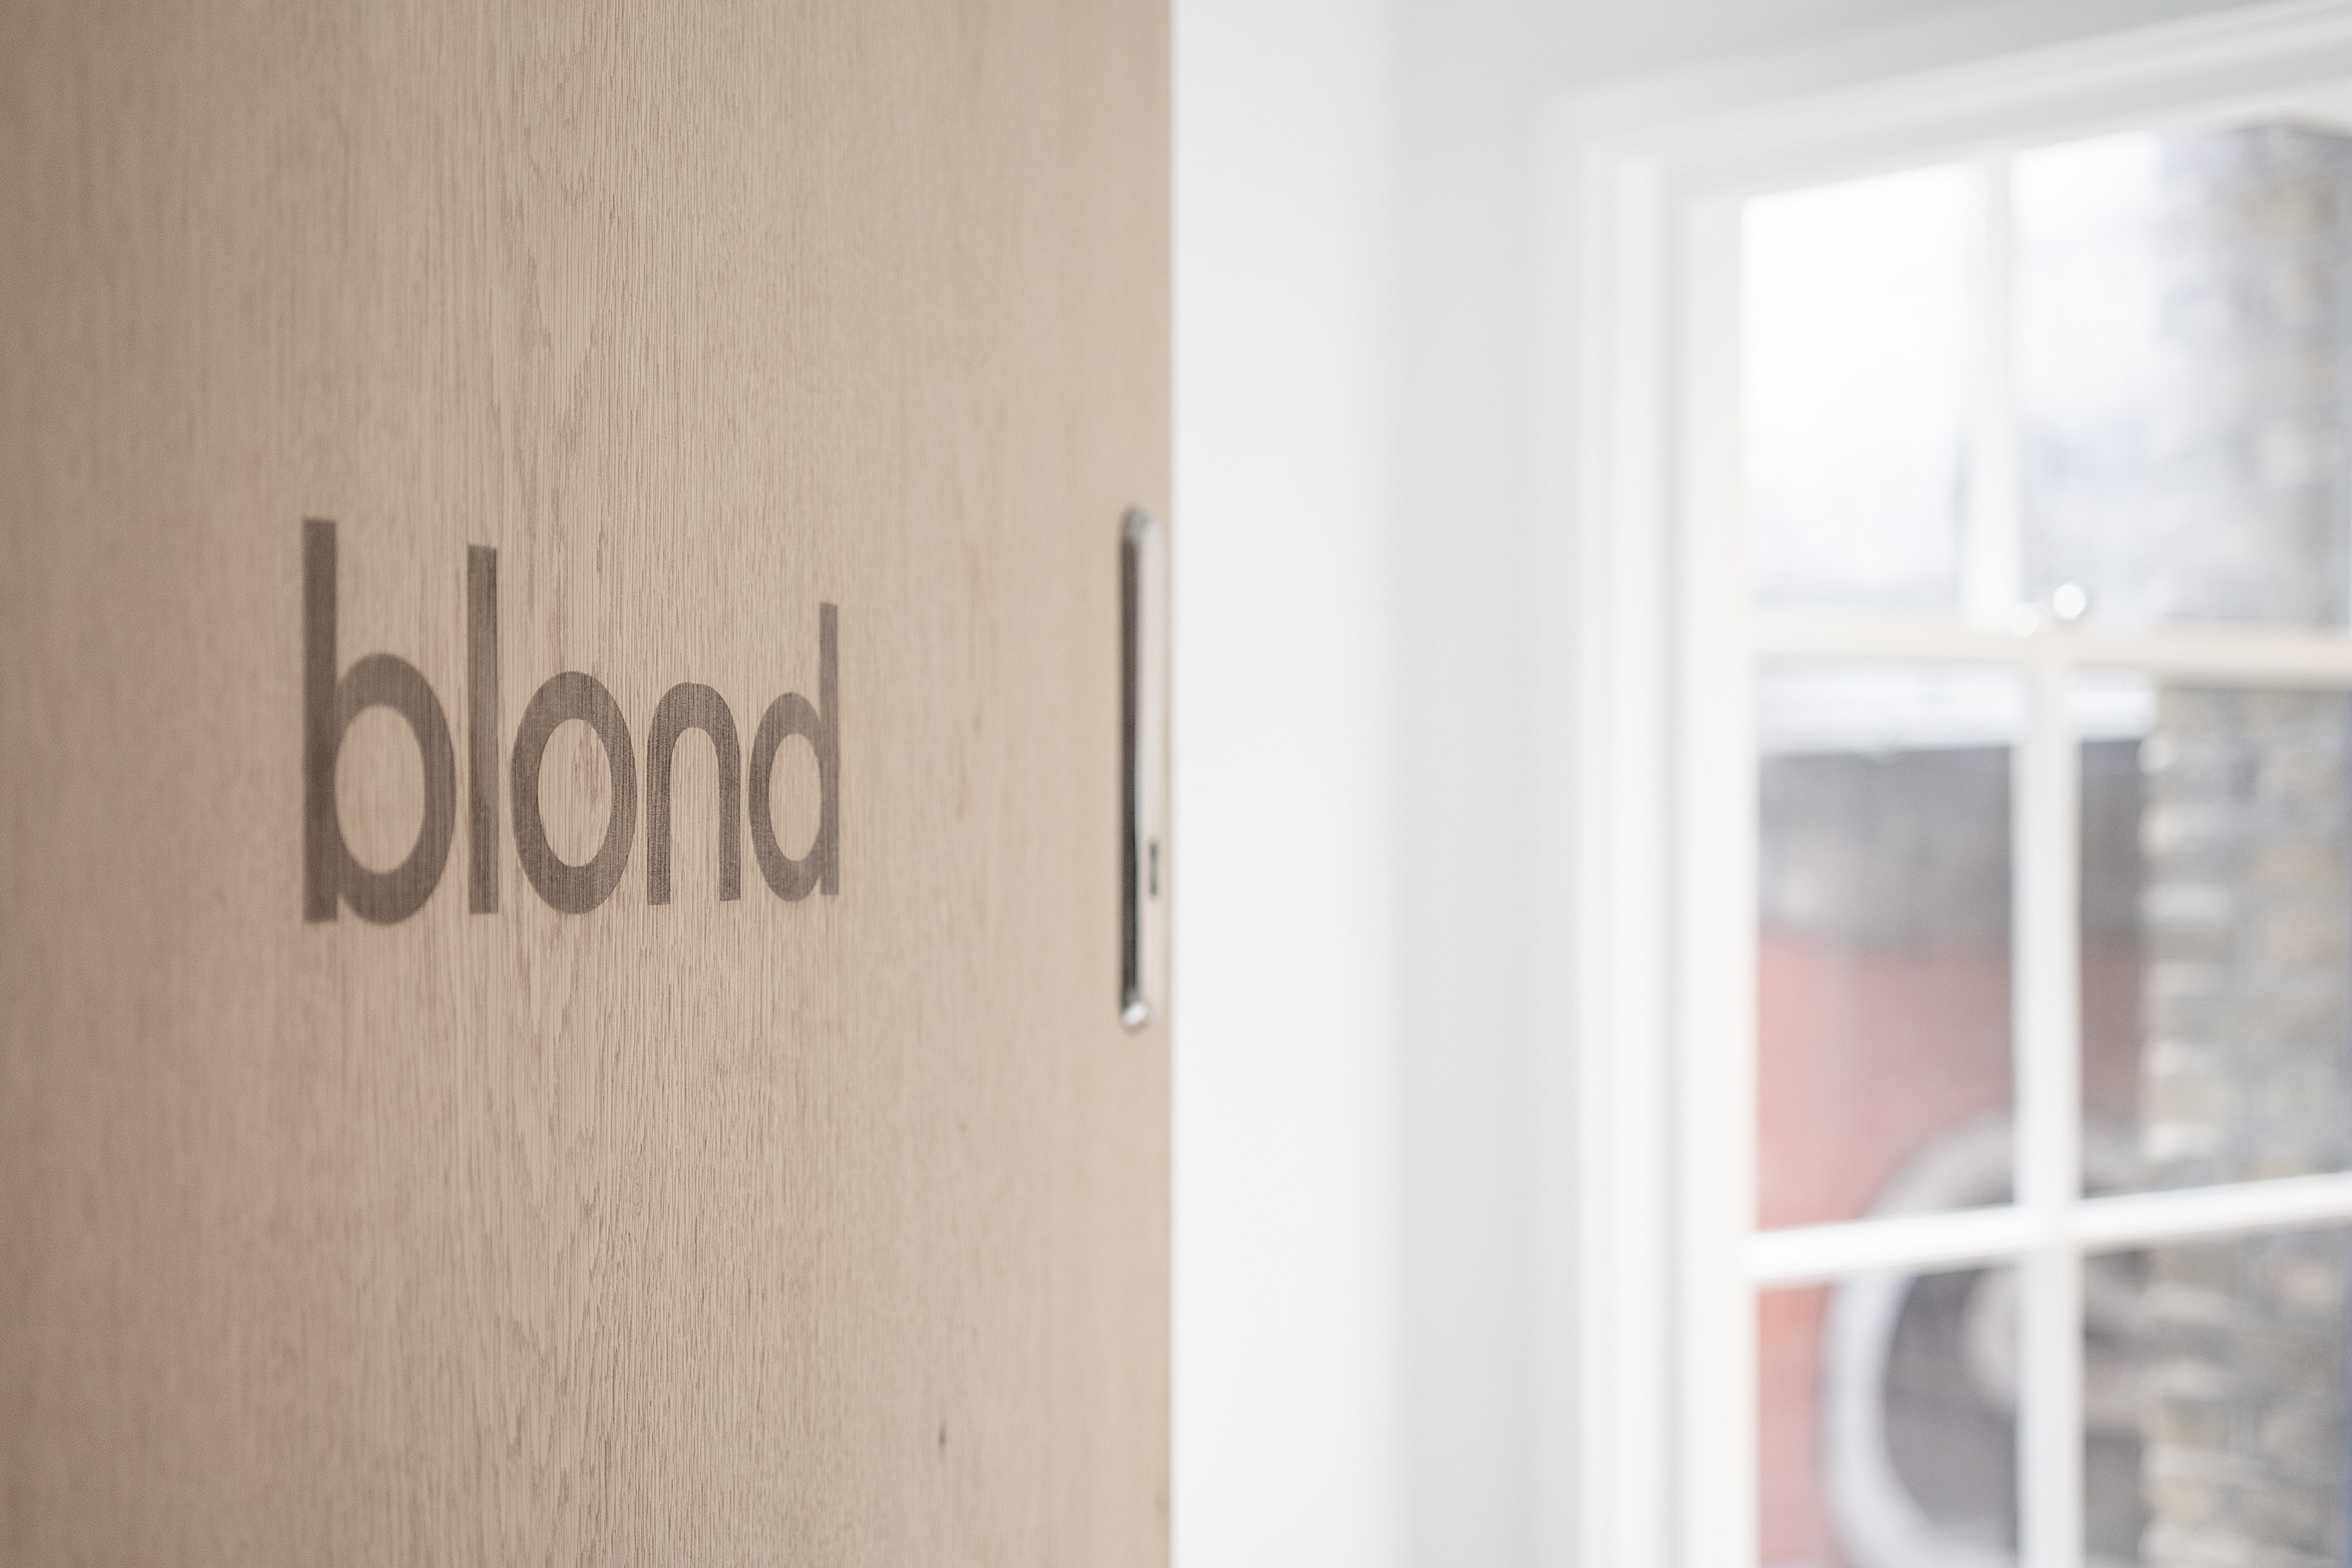 A partially open wooden door with the blond logo engraved. A window can be seen in the background.